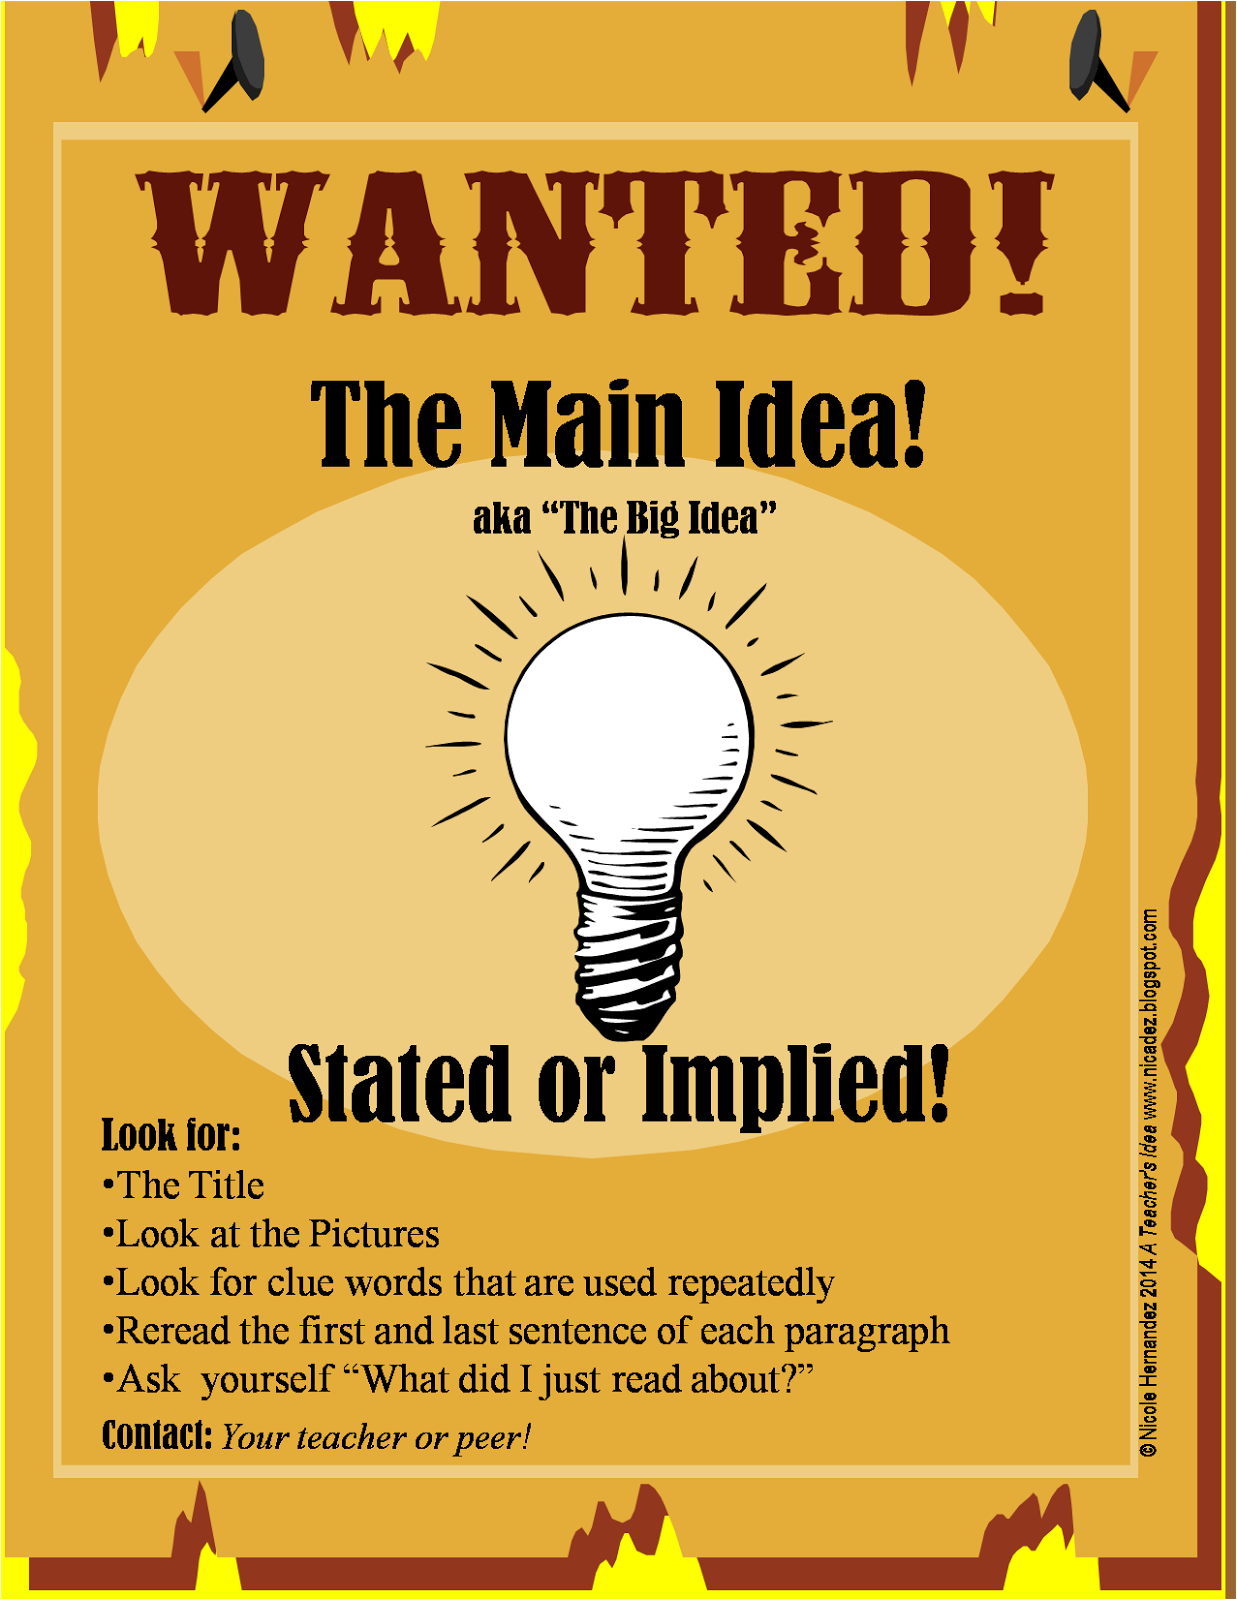 http://www.teacherspayteachers.com/Product/Freebie-WANTED-Poster-Finding-the-Main-Idea-1550706